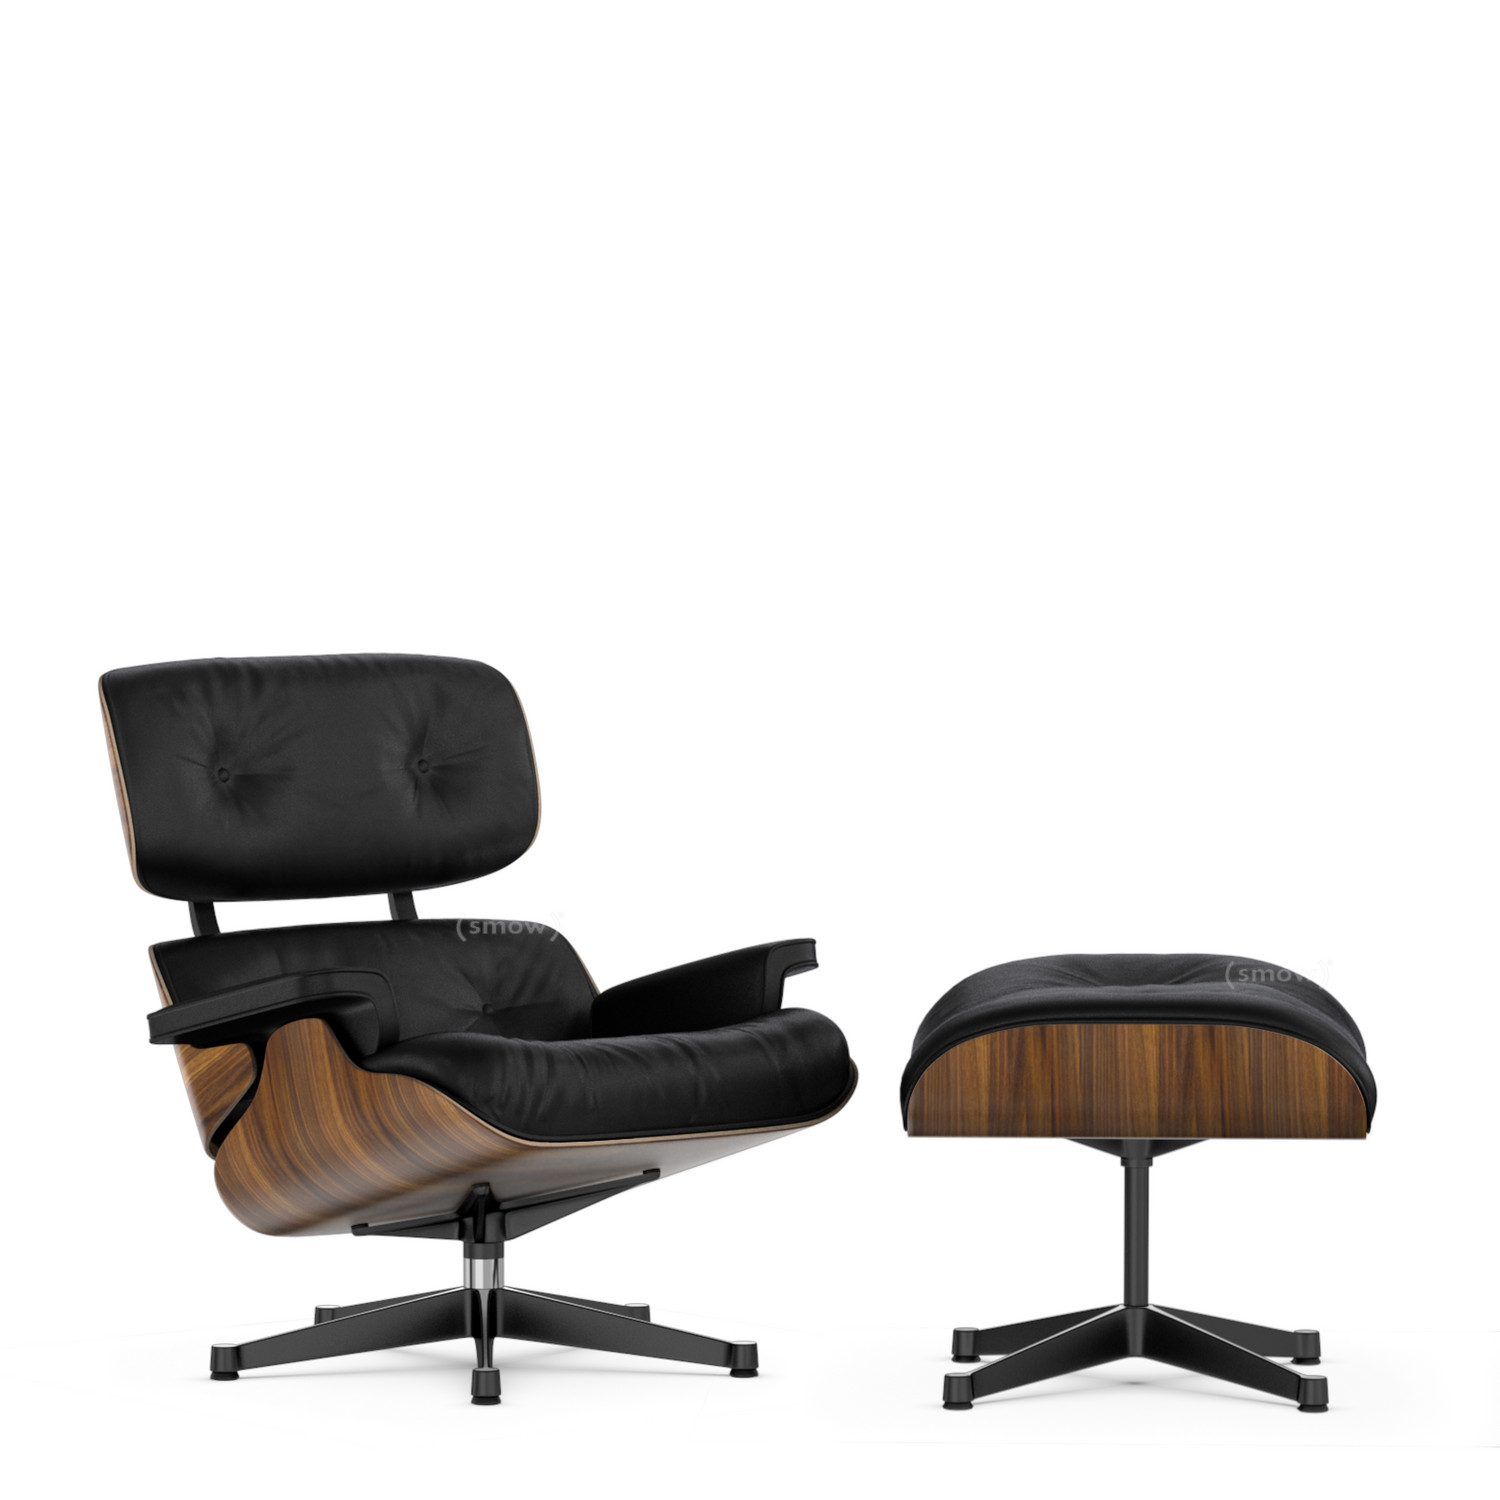 Charles Eames Vitra Lounge Chair Ottoman By Charles Ray Eames 1956